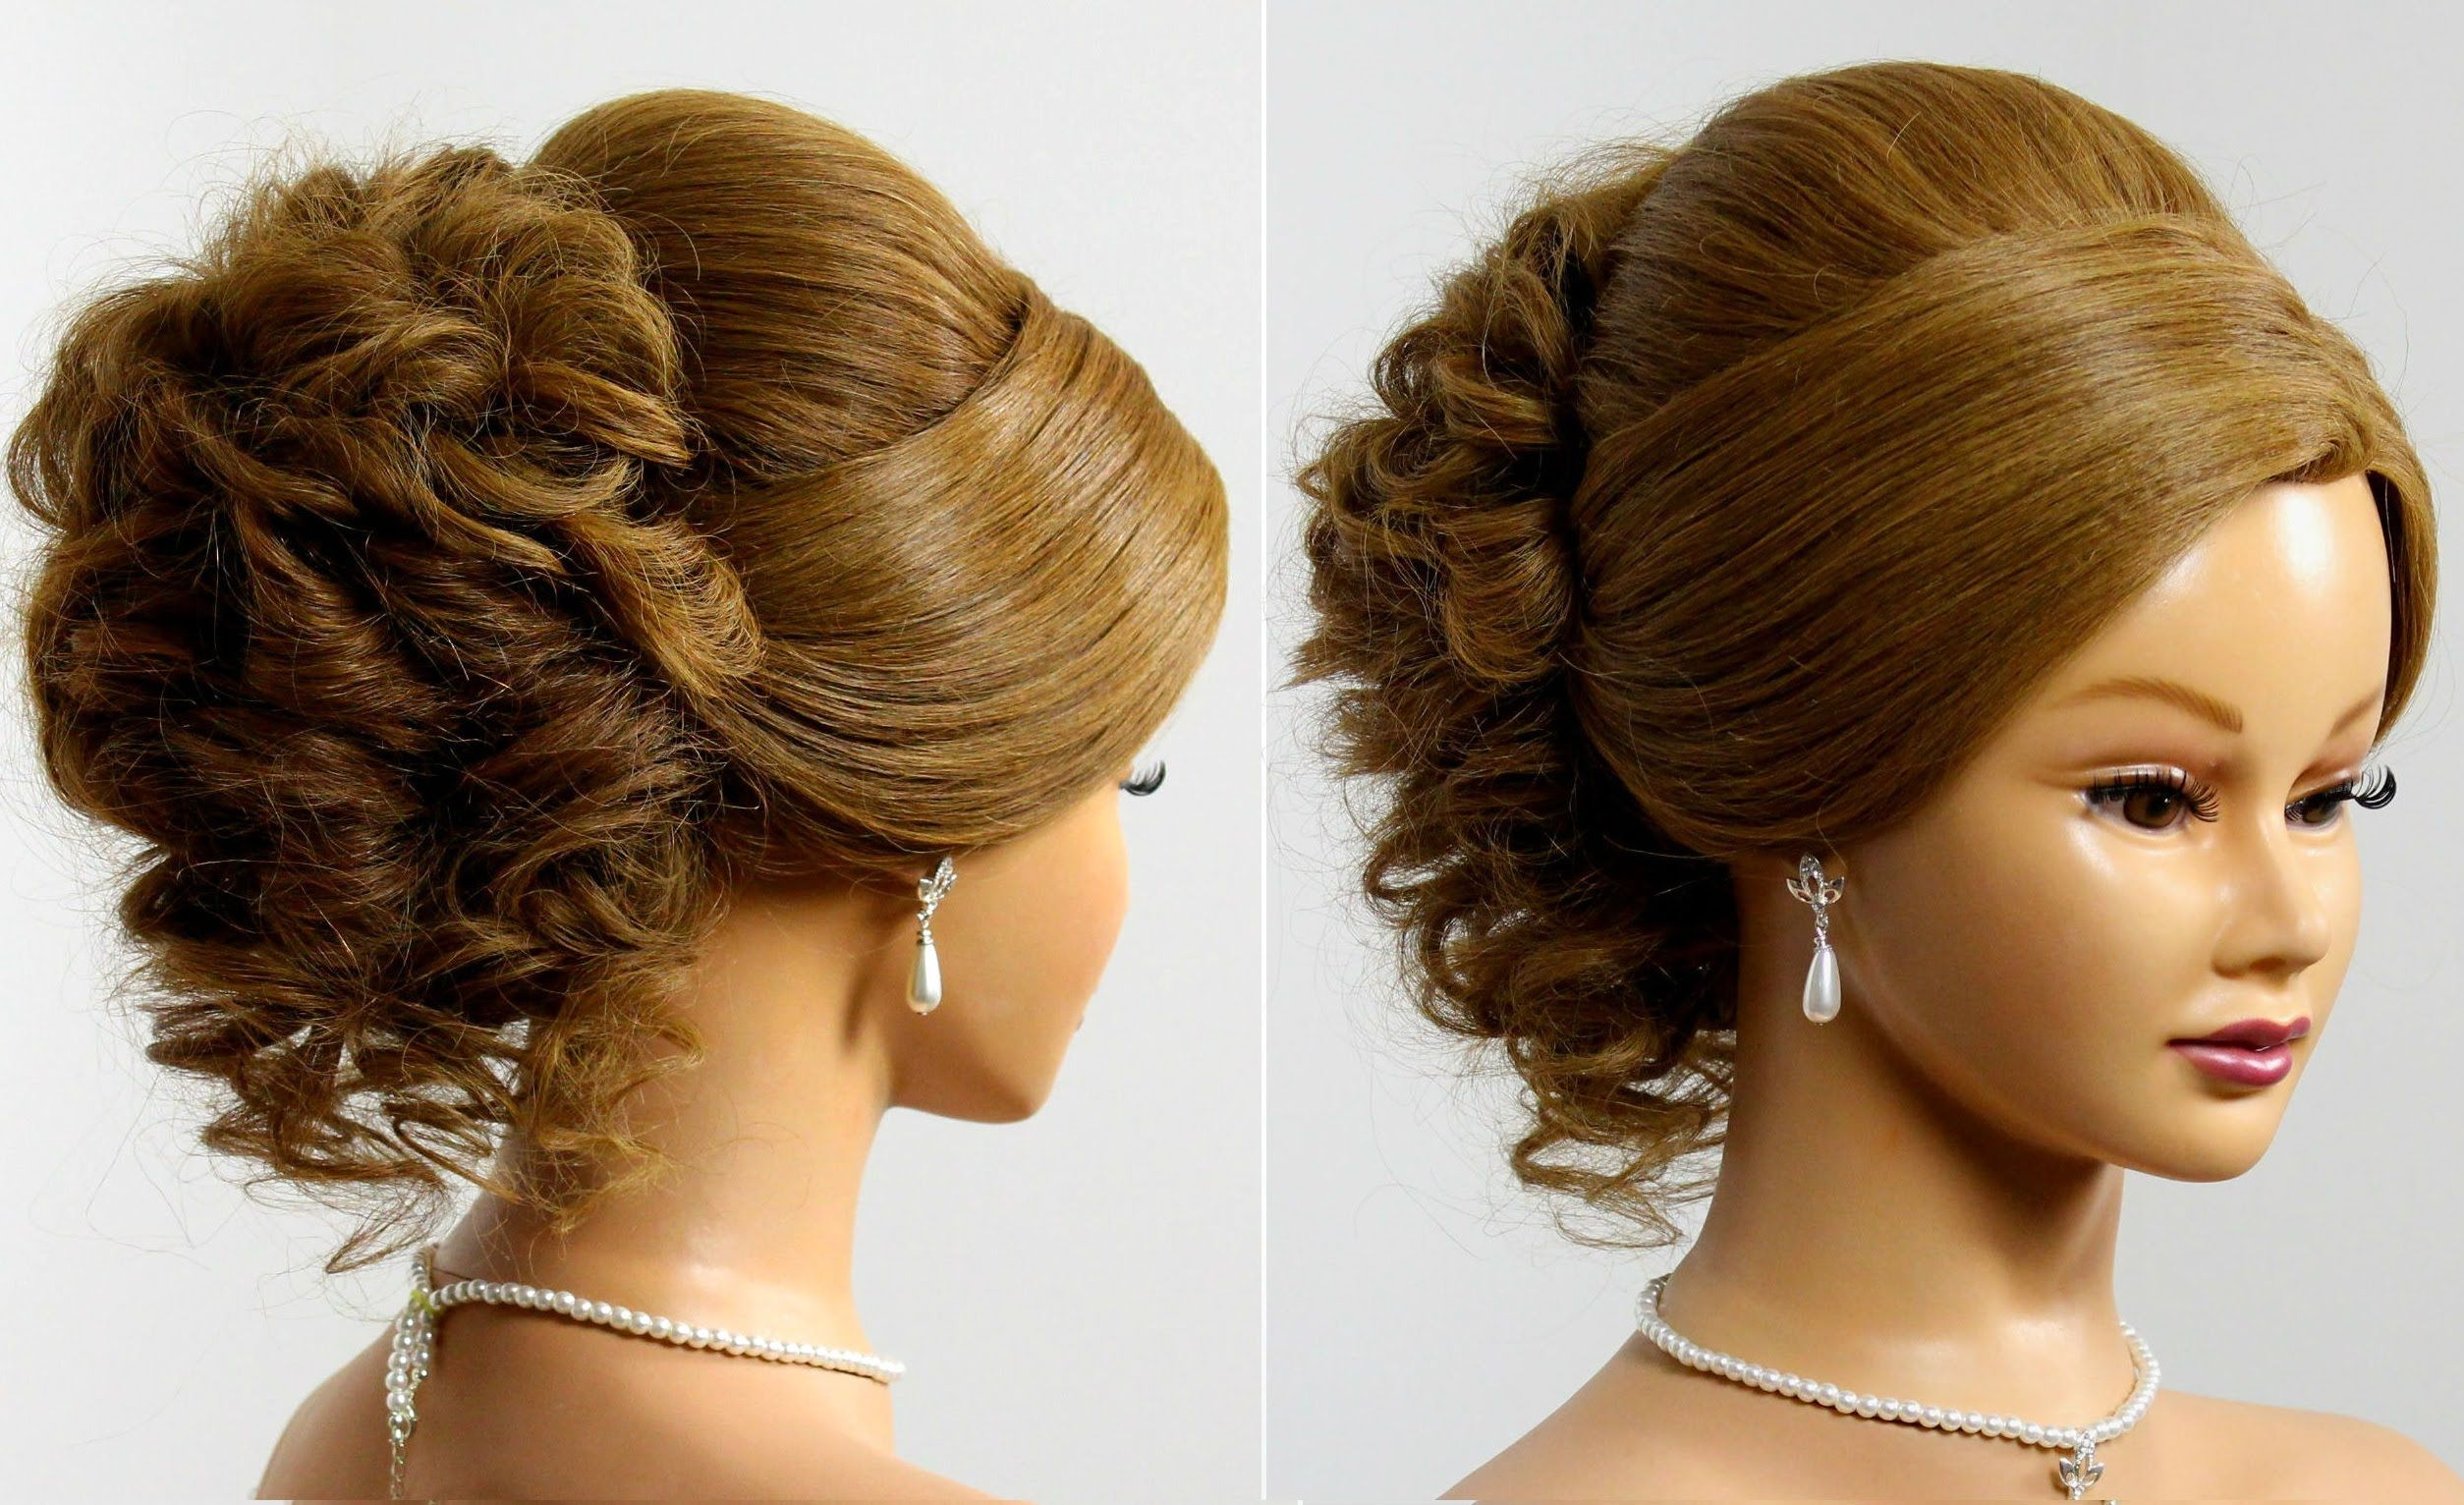 prom wedding updo. hairstyle for long medium hair | hair | pinterest